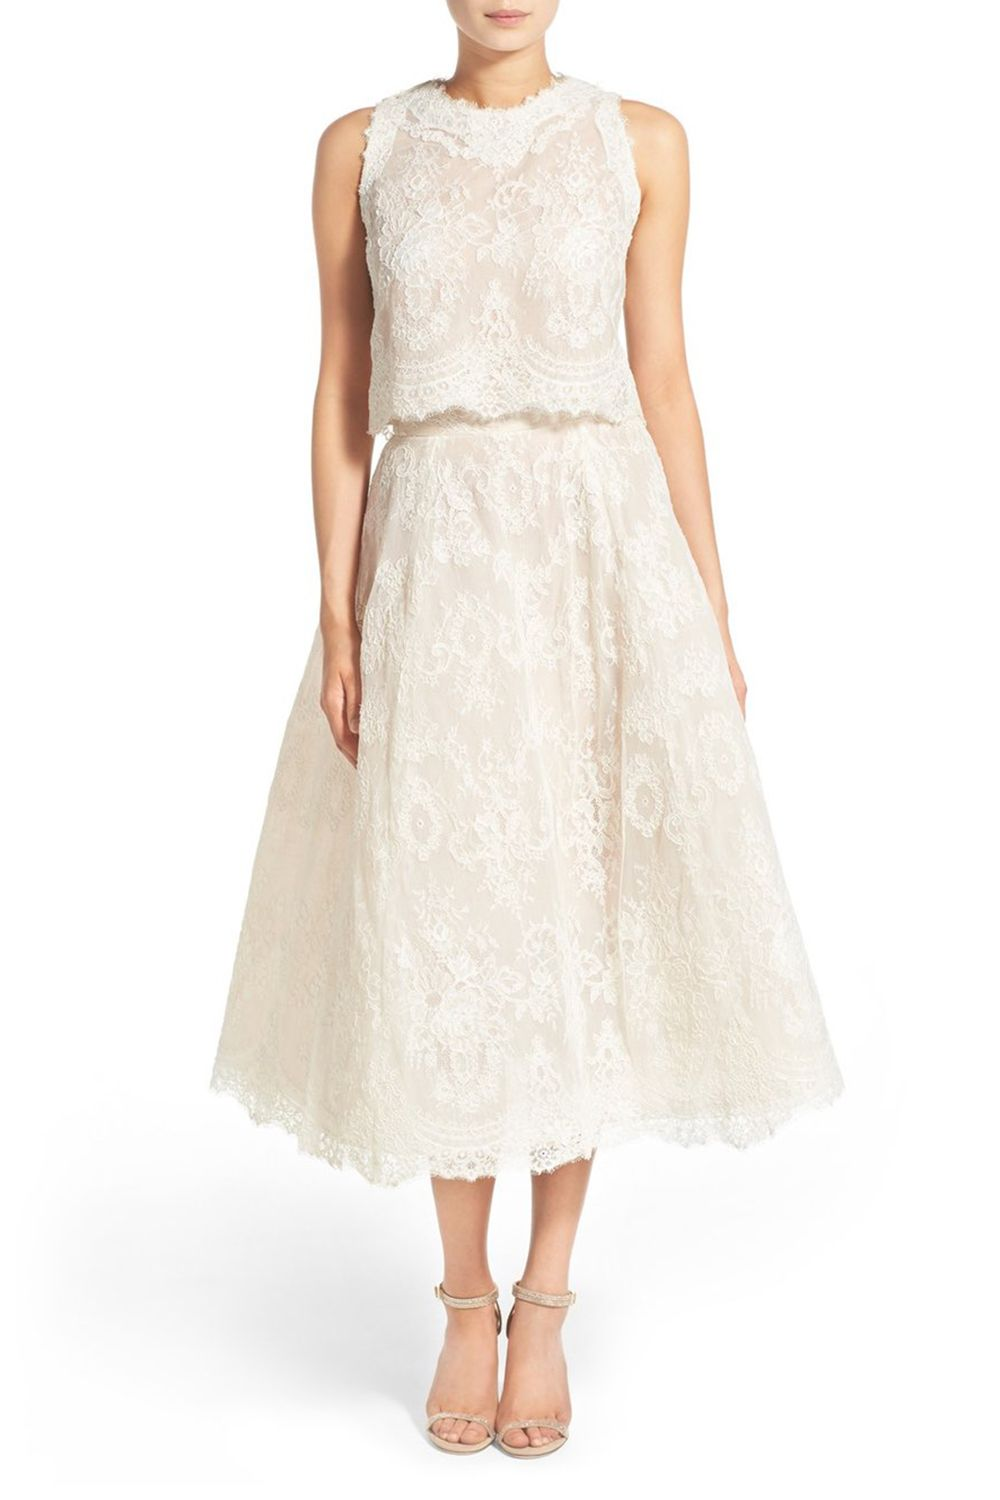 "<p>Everybody likes a two-fer, and everybody likes an Audrey Hepburn reference even more. </p><p>$2,208, <a href=""http://shop.nordstrom.com/s/embrdrd-lace-crop-top-skirt/4247466?origin=category-personalizedsort&fashioncolor=SILK%20WHITE%2F%20NUDE"" target=""_blank"" data-tracking-id=""recirc-text-link"">shop.nordstrom.com</a>.</p>"